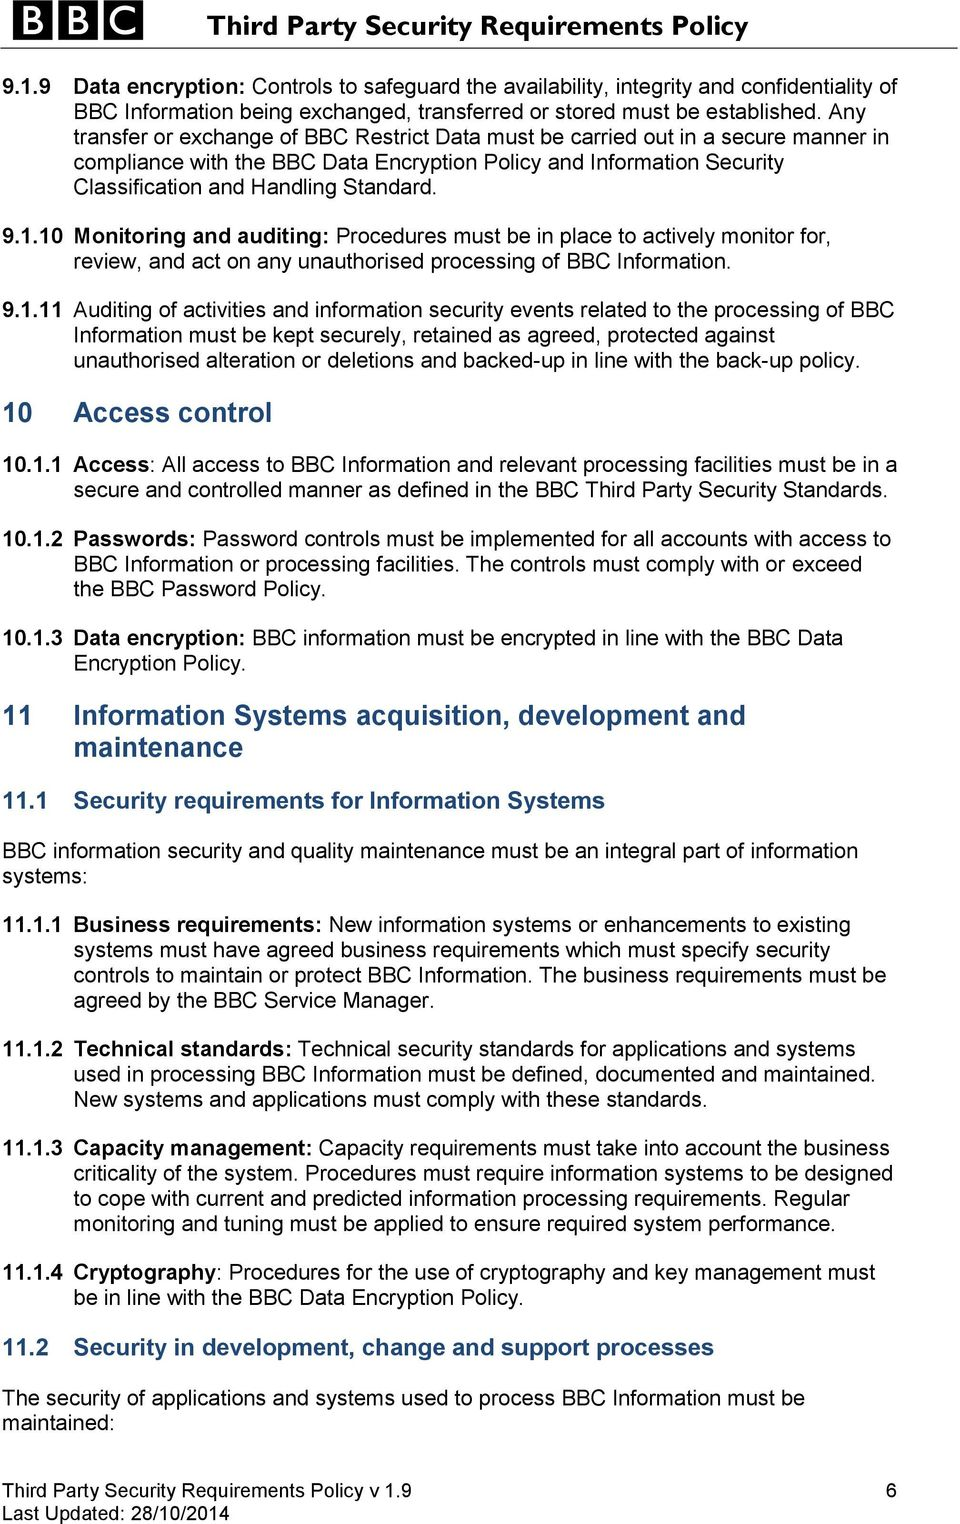 1.10 Monitoring and auditing: Procedures must be in place to actively monitor for, review, and act on any unauthorised processing of BBC Information. 9.1.11 Auditing of activities and information